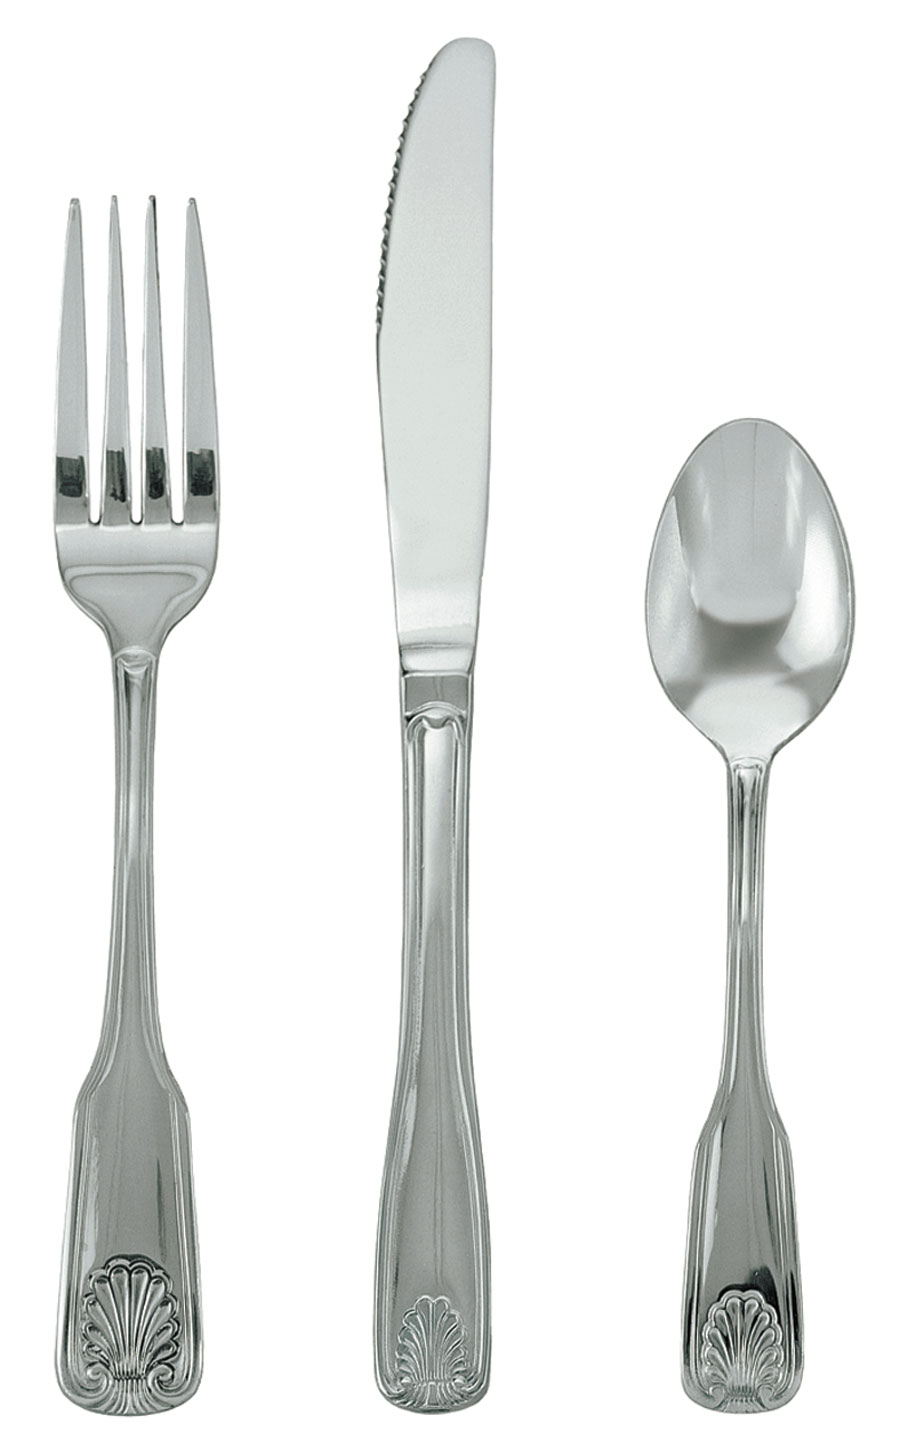 Update International SH-507-N Shelley Oyster Fork - 1 doz